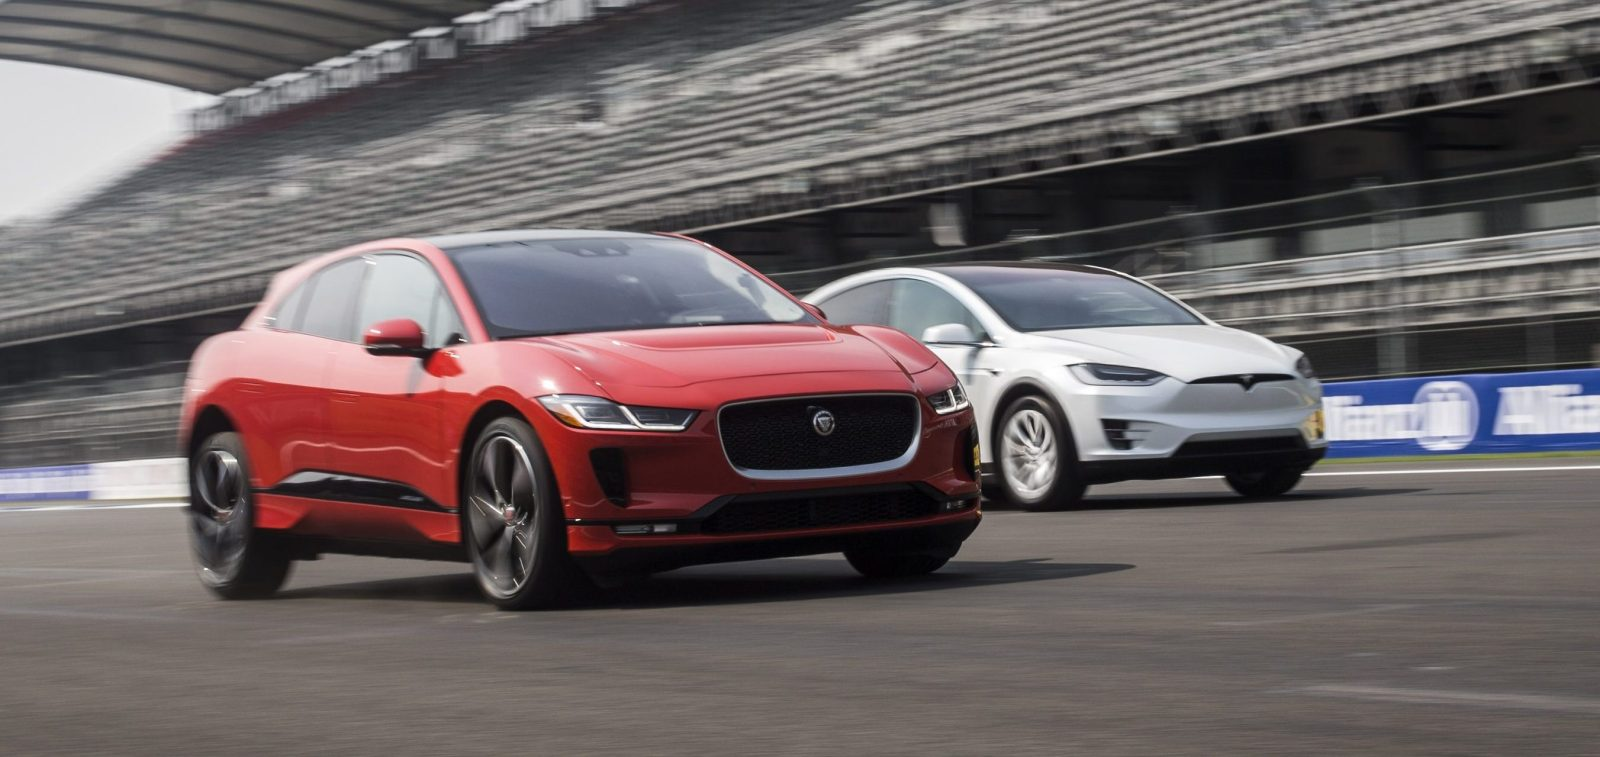 2019 Jaguar I-Pace EV: Design, Specs, Mileage, Price >> Jaguar I Pace Electrek